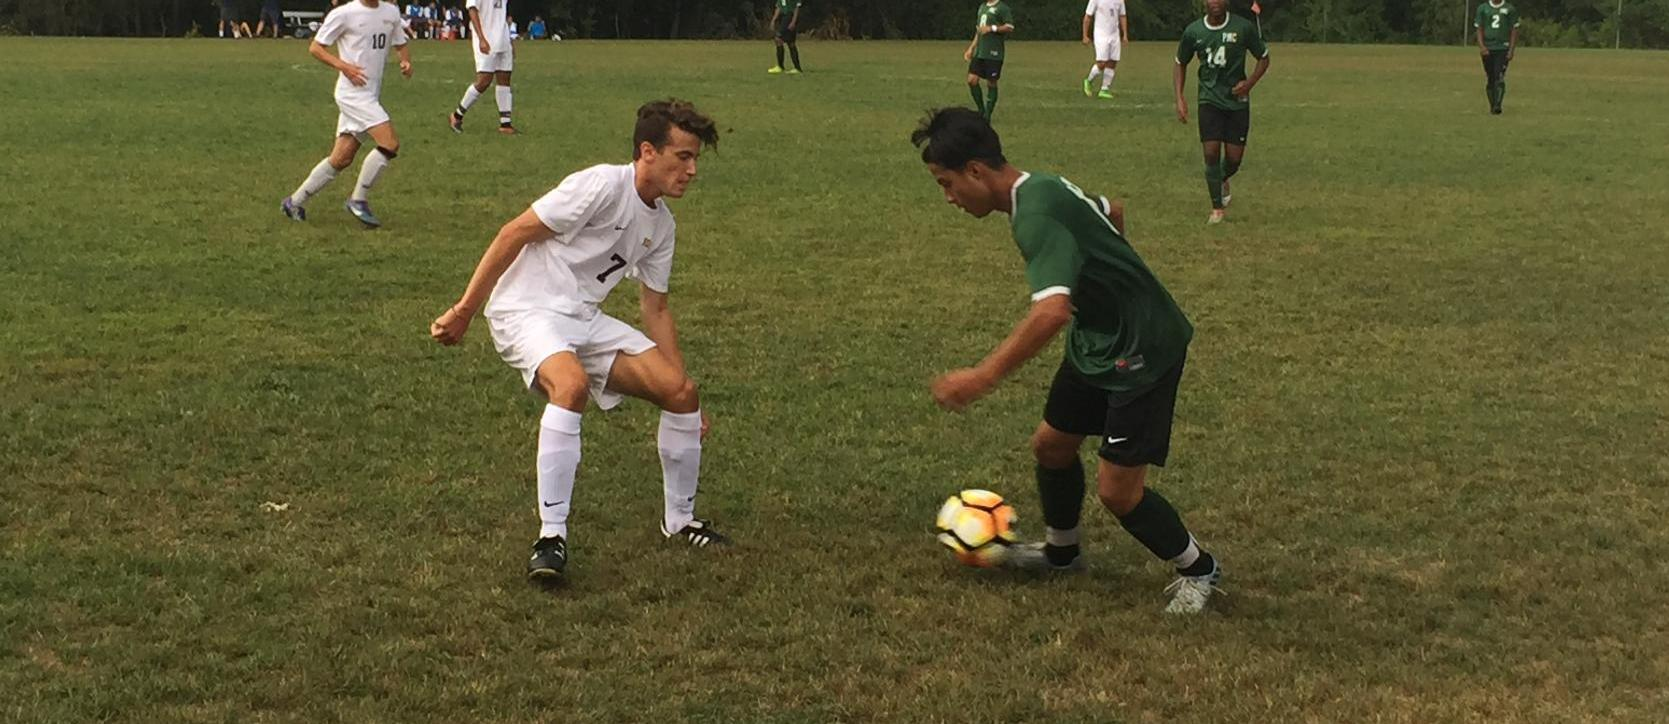 Gatots Shutout in 2-0 Loss at Worcester State